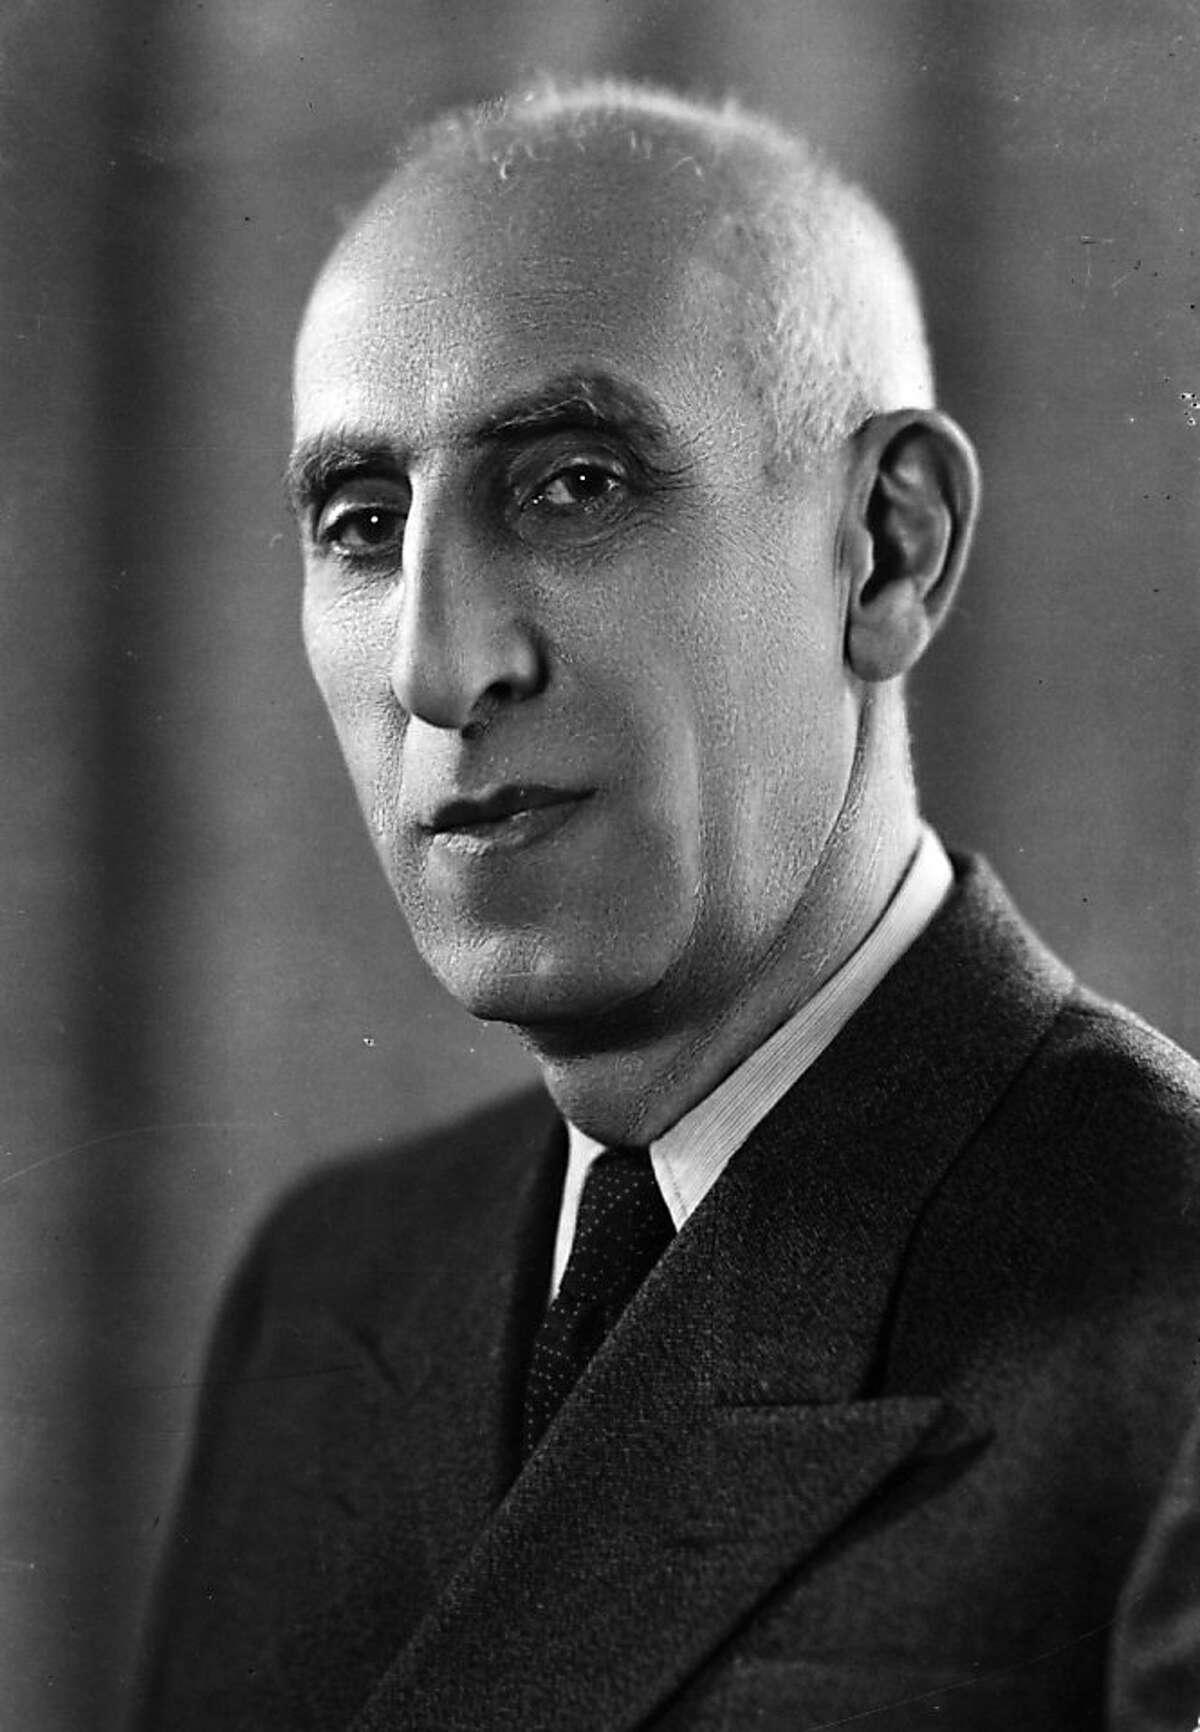 FILE - August 20, 2013: Sixty years since the overthrow of Iranian Prime Minister Mohammad Massadegh, newly declassified documents acknowledge the CIAsrole in the 1953 Iranian coup. circa 1952: Iranian statesman Mohammed Mosaddeq (1880 - 1967), also spelt Massaddiq or Mossadegh, president of Iran (1951 - 1953). (Photo by Keystone/Getty Images)